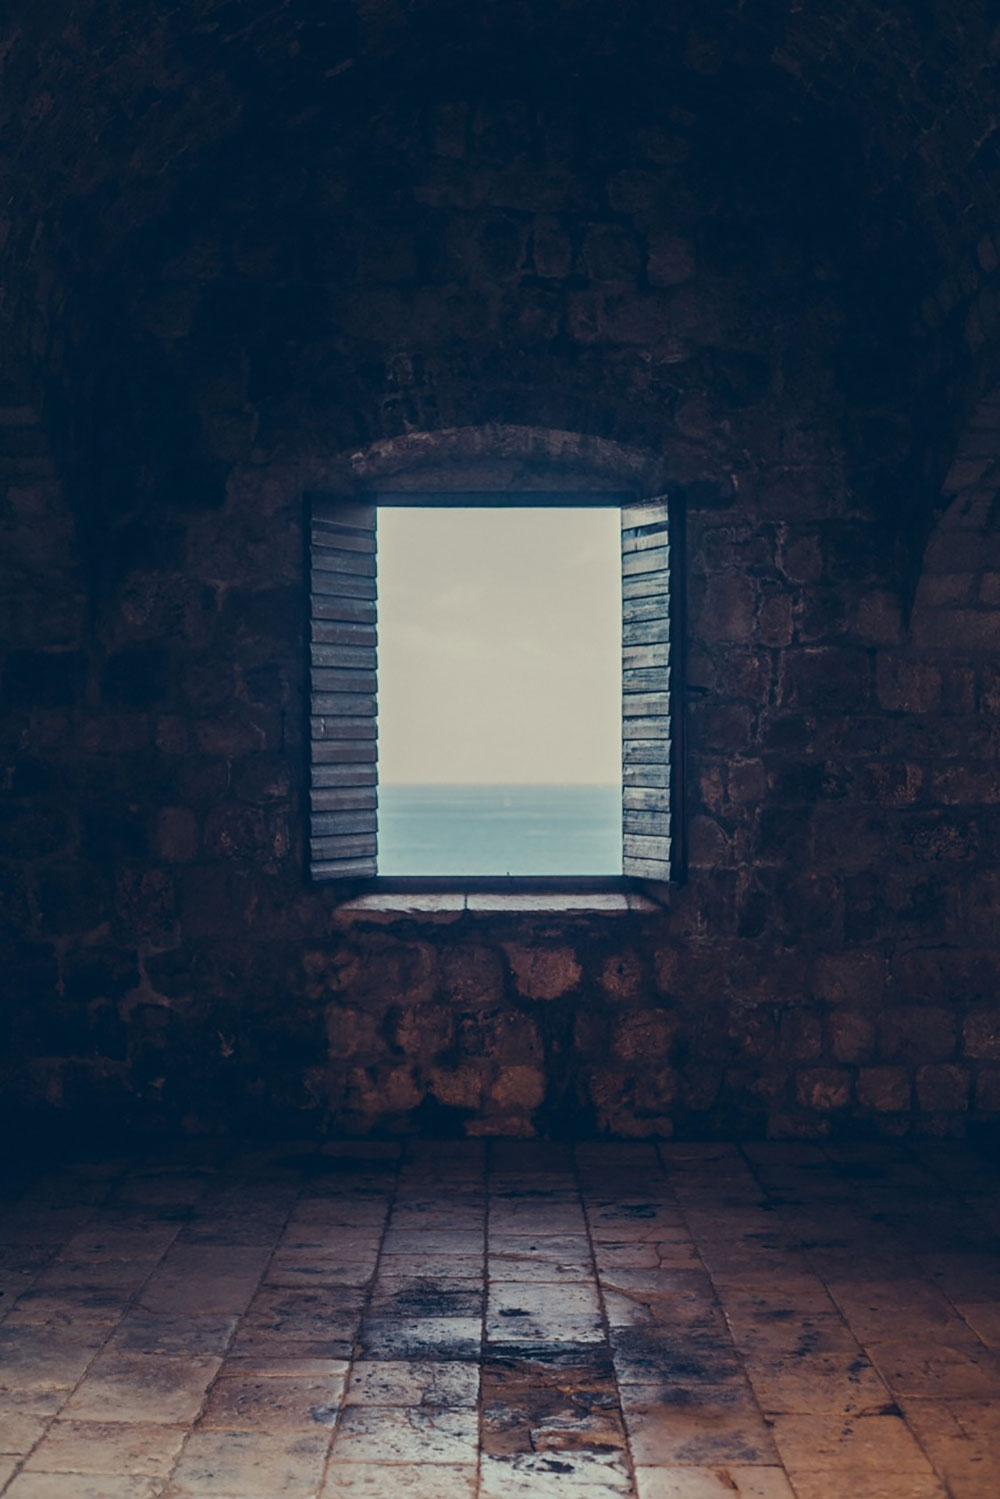 Looking through a window to the Adriatic Sea – Dubrovnik